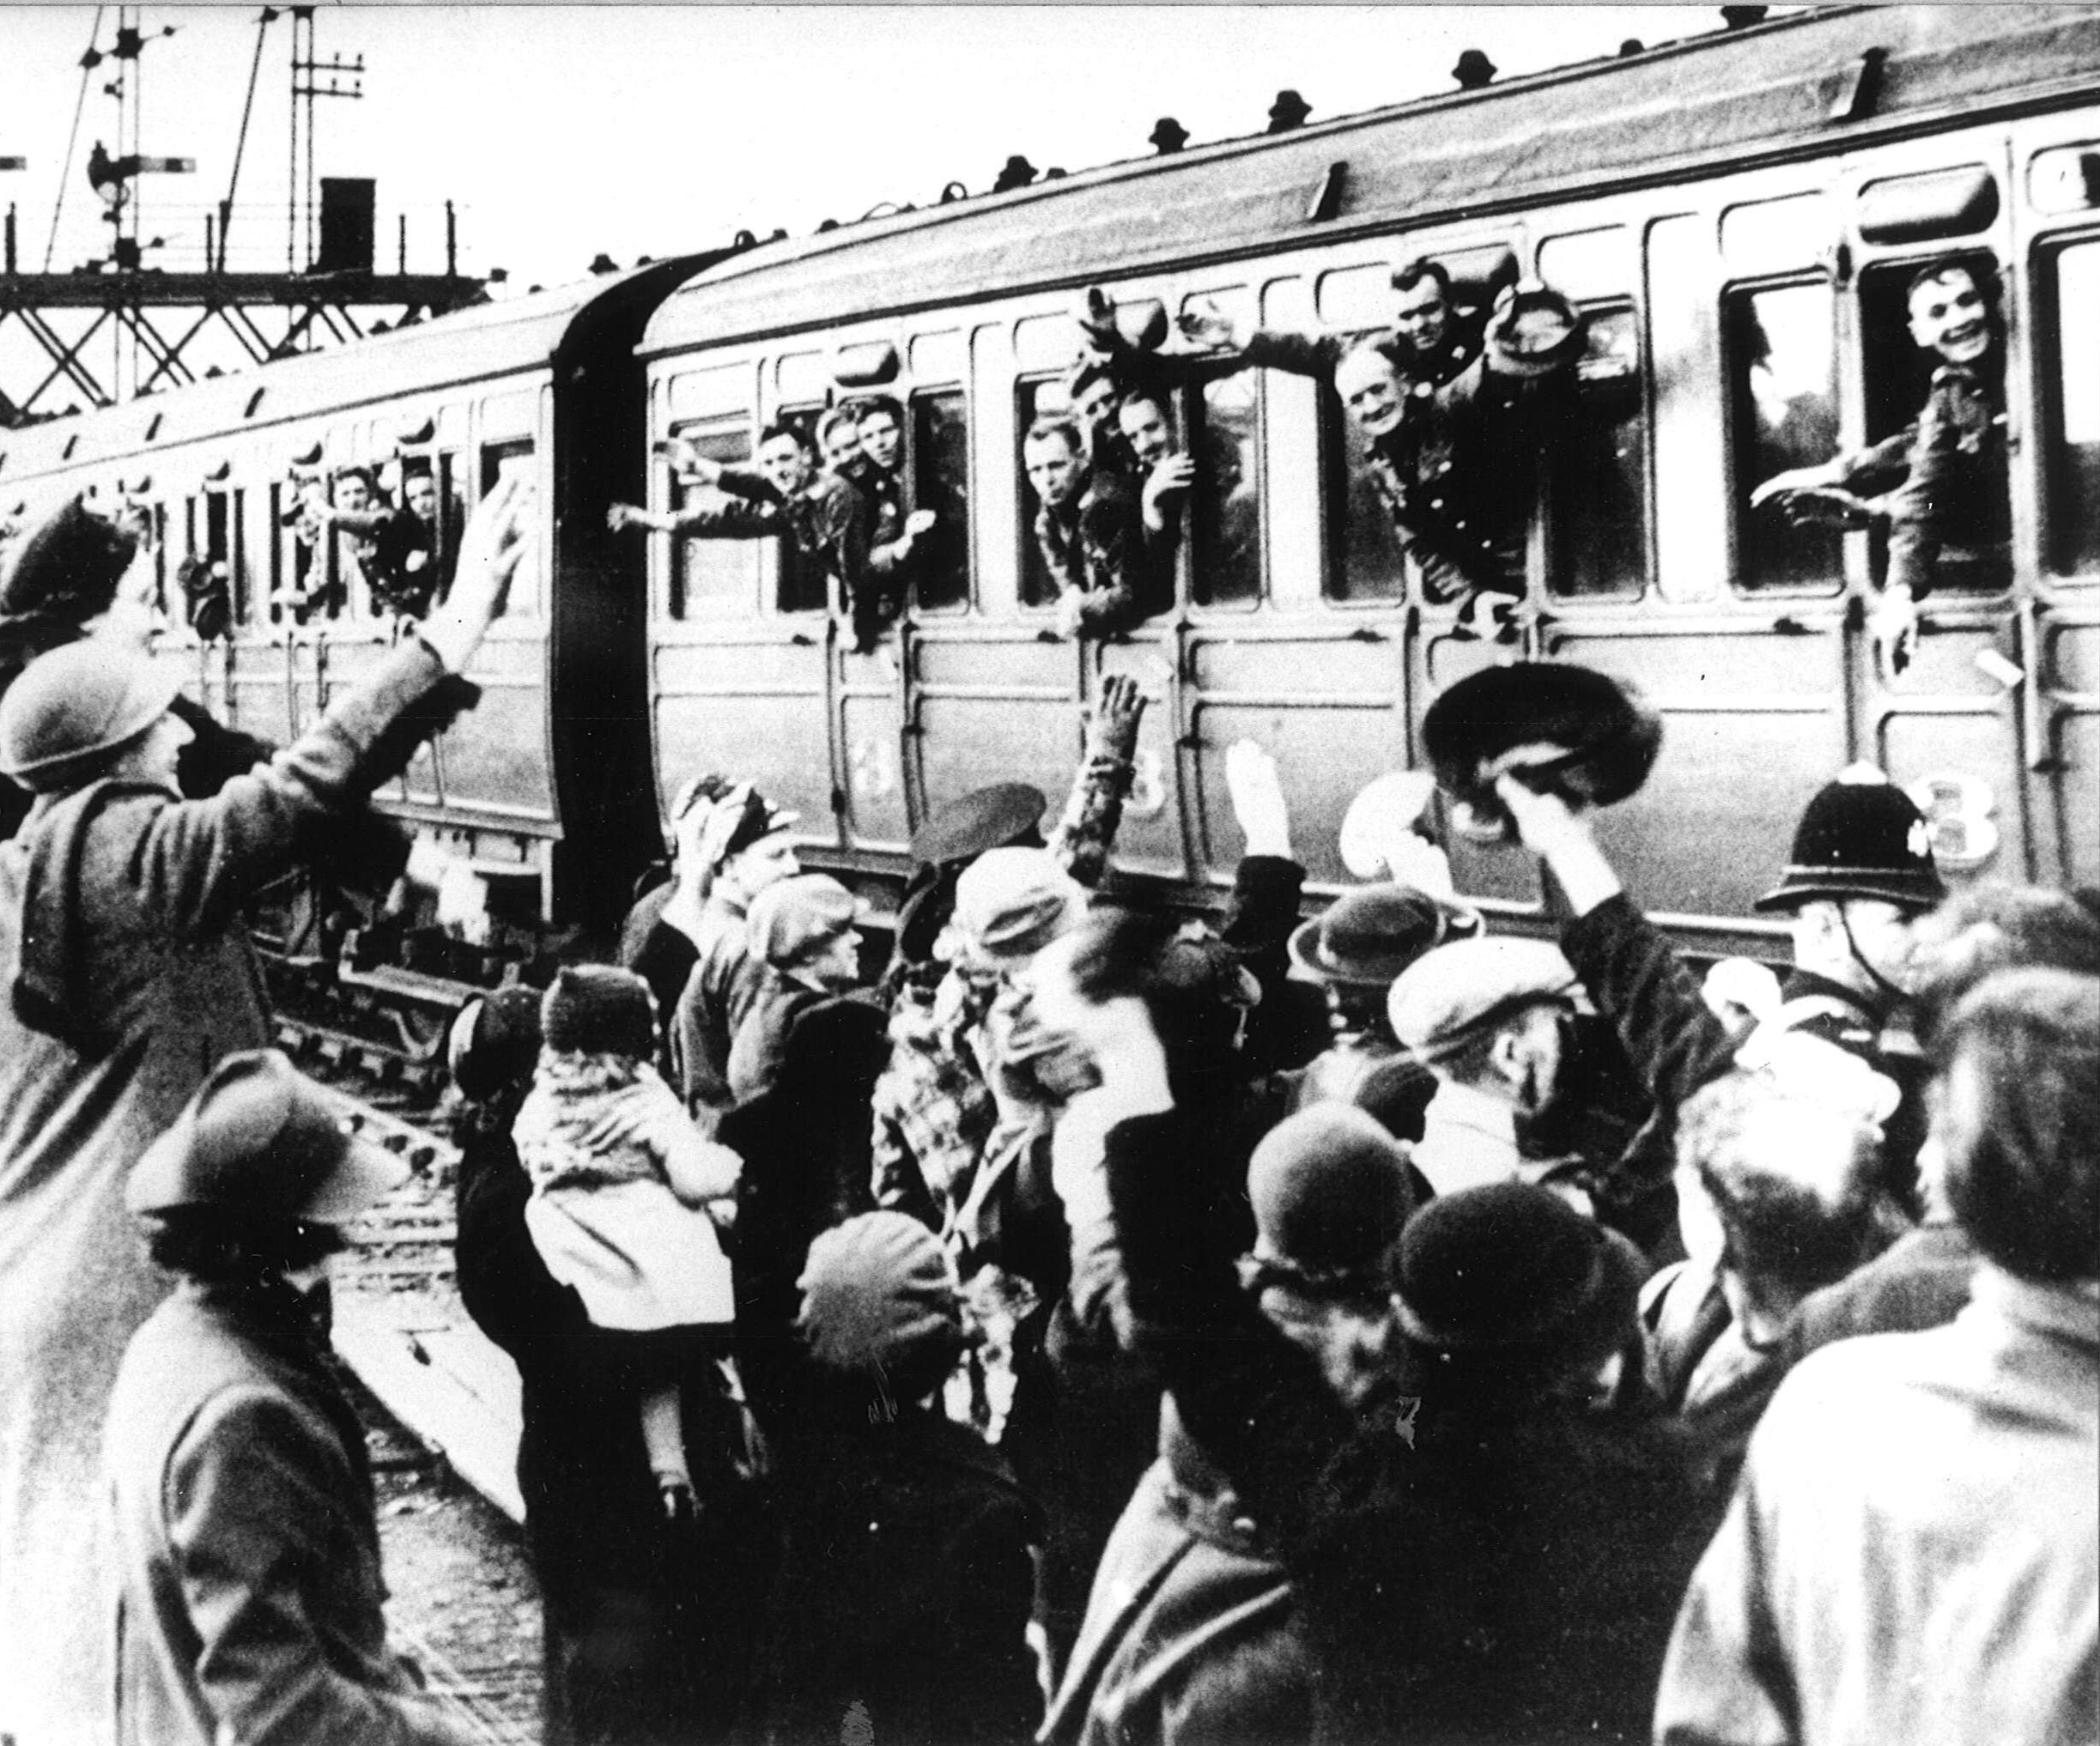 The troops say farewell at Aberdeen station